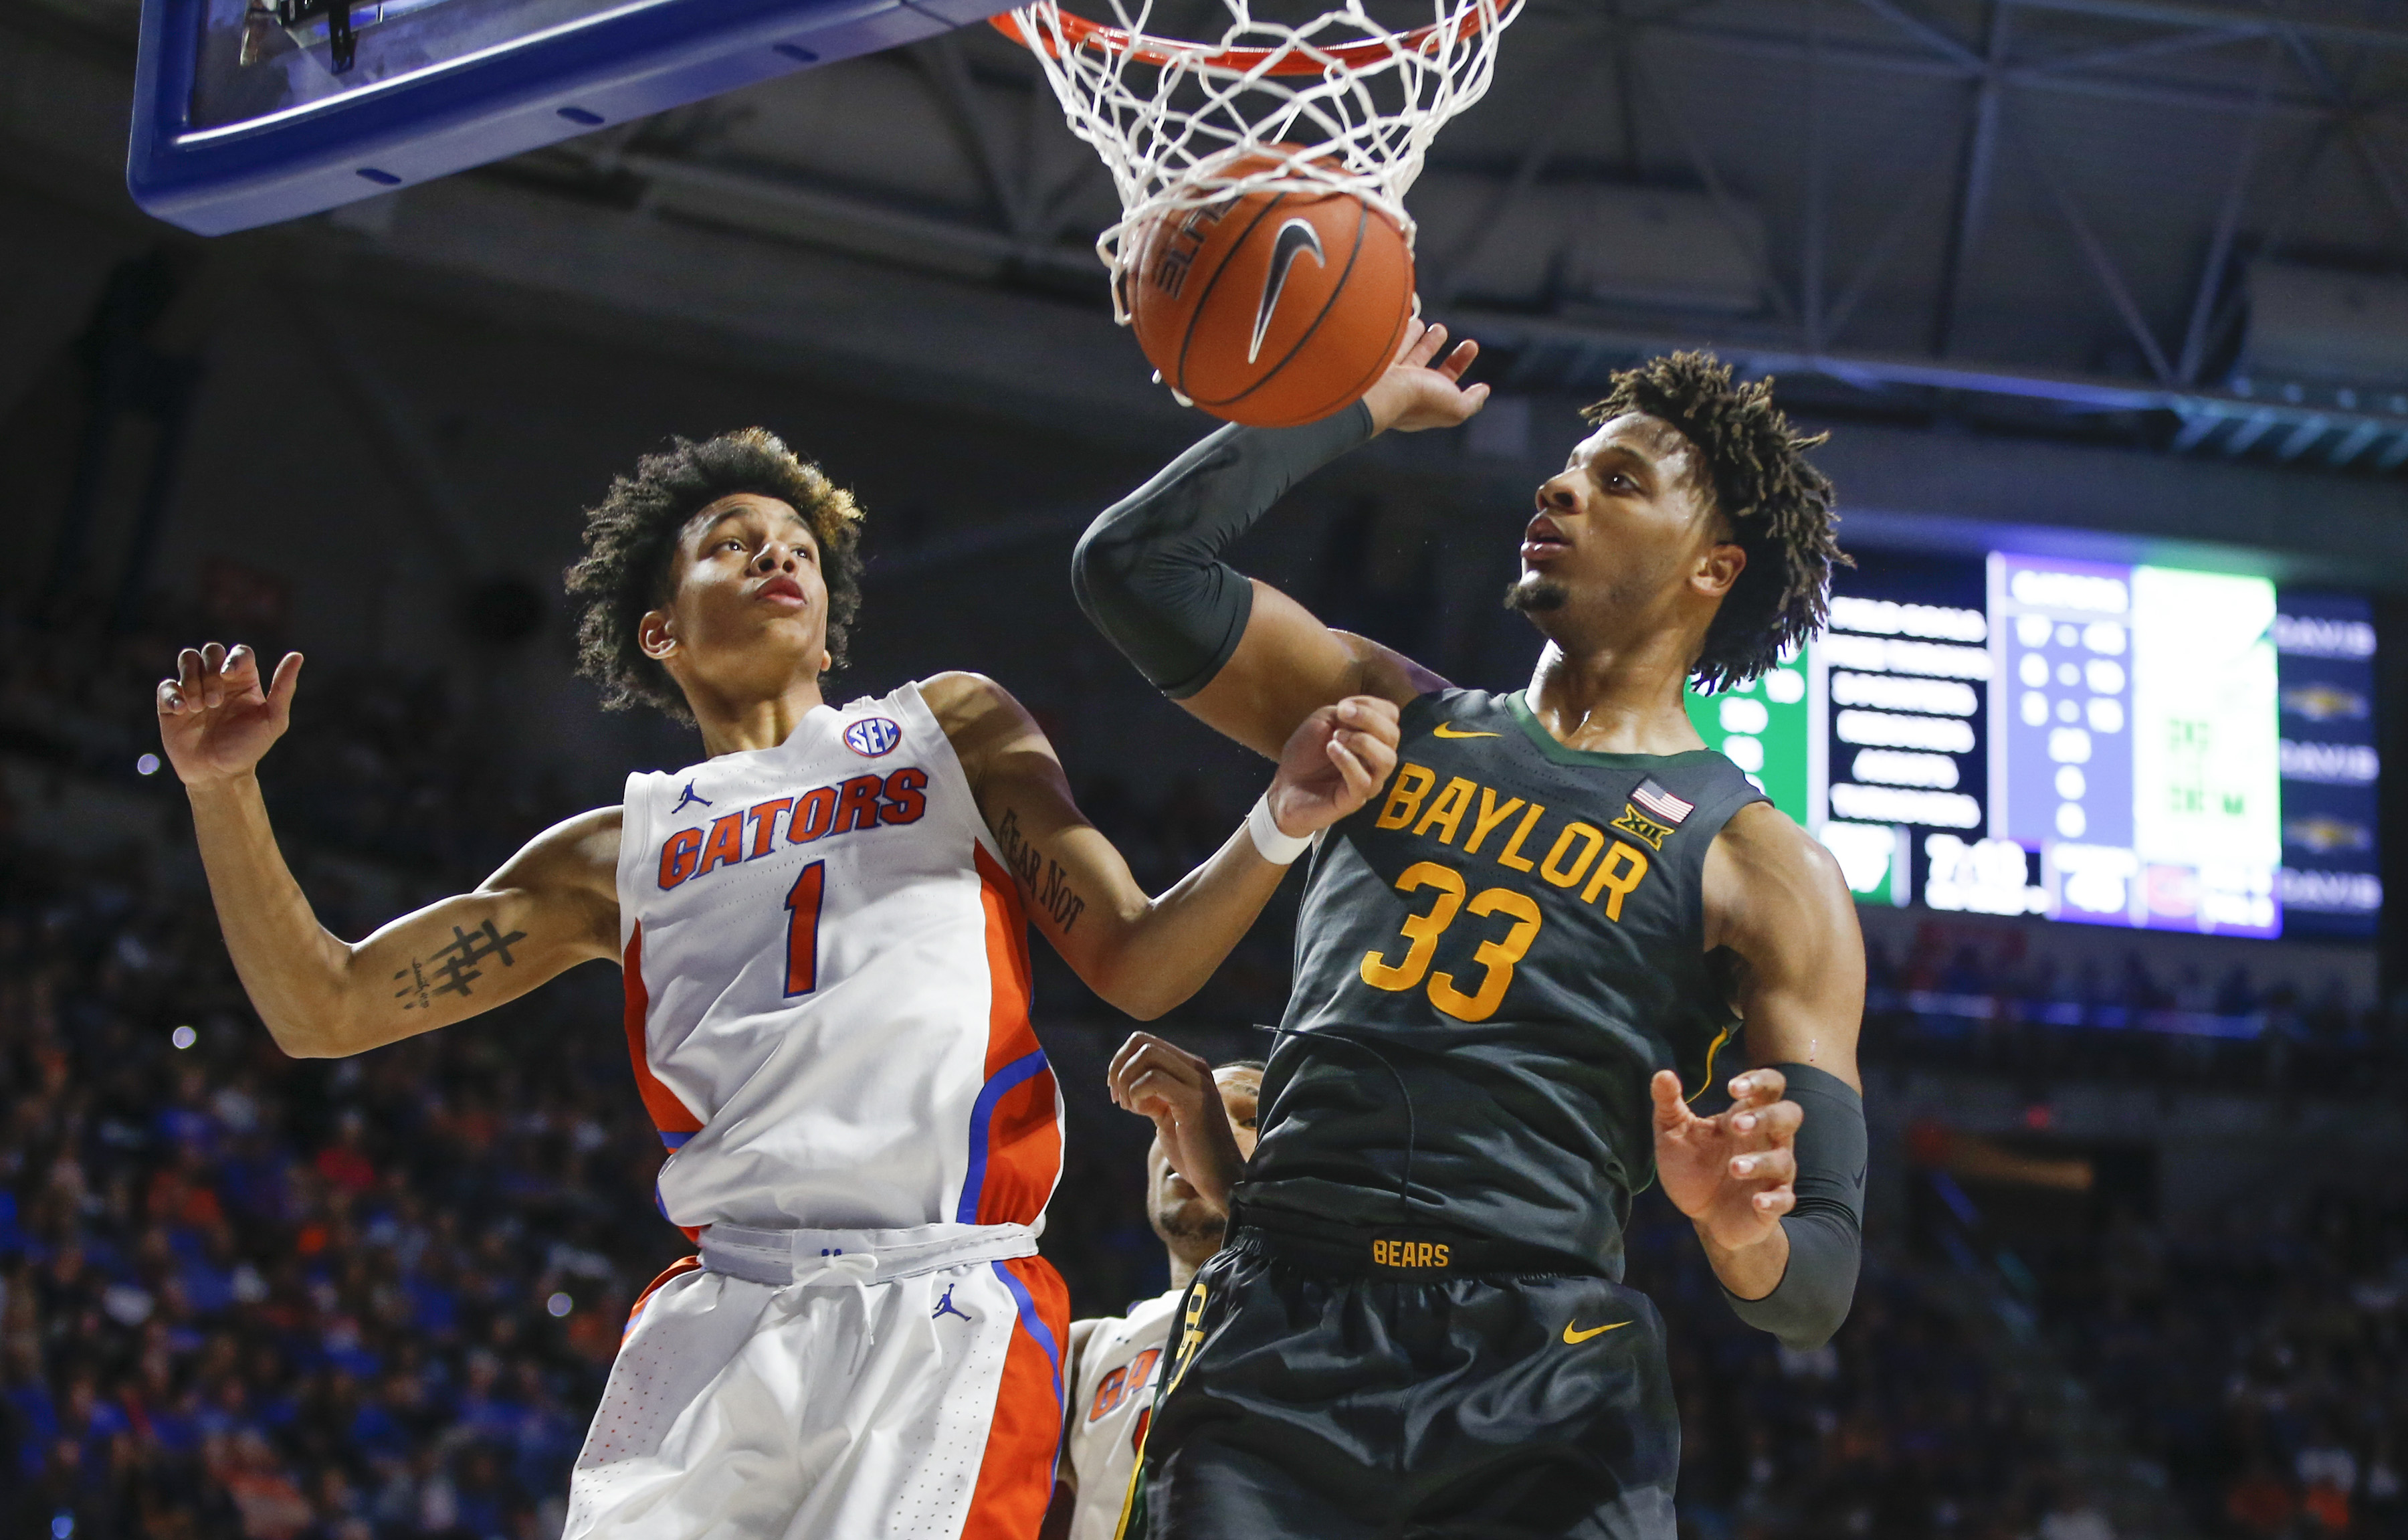 Bracketology 2020: Baylor is emerging as a title favorite